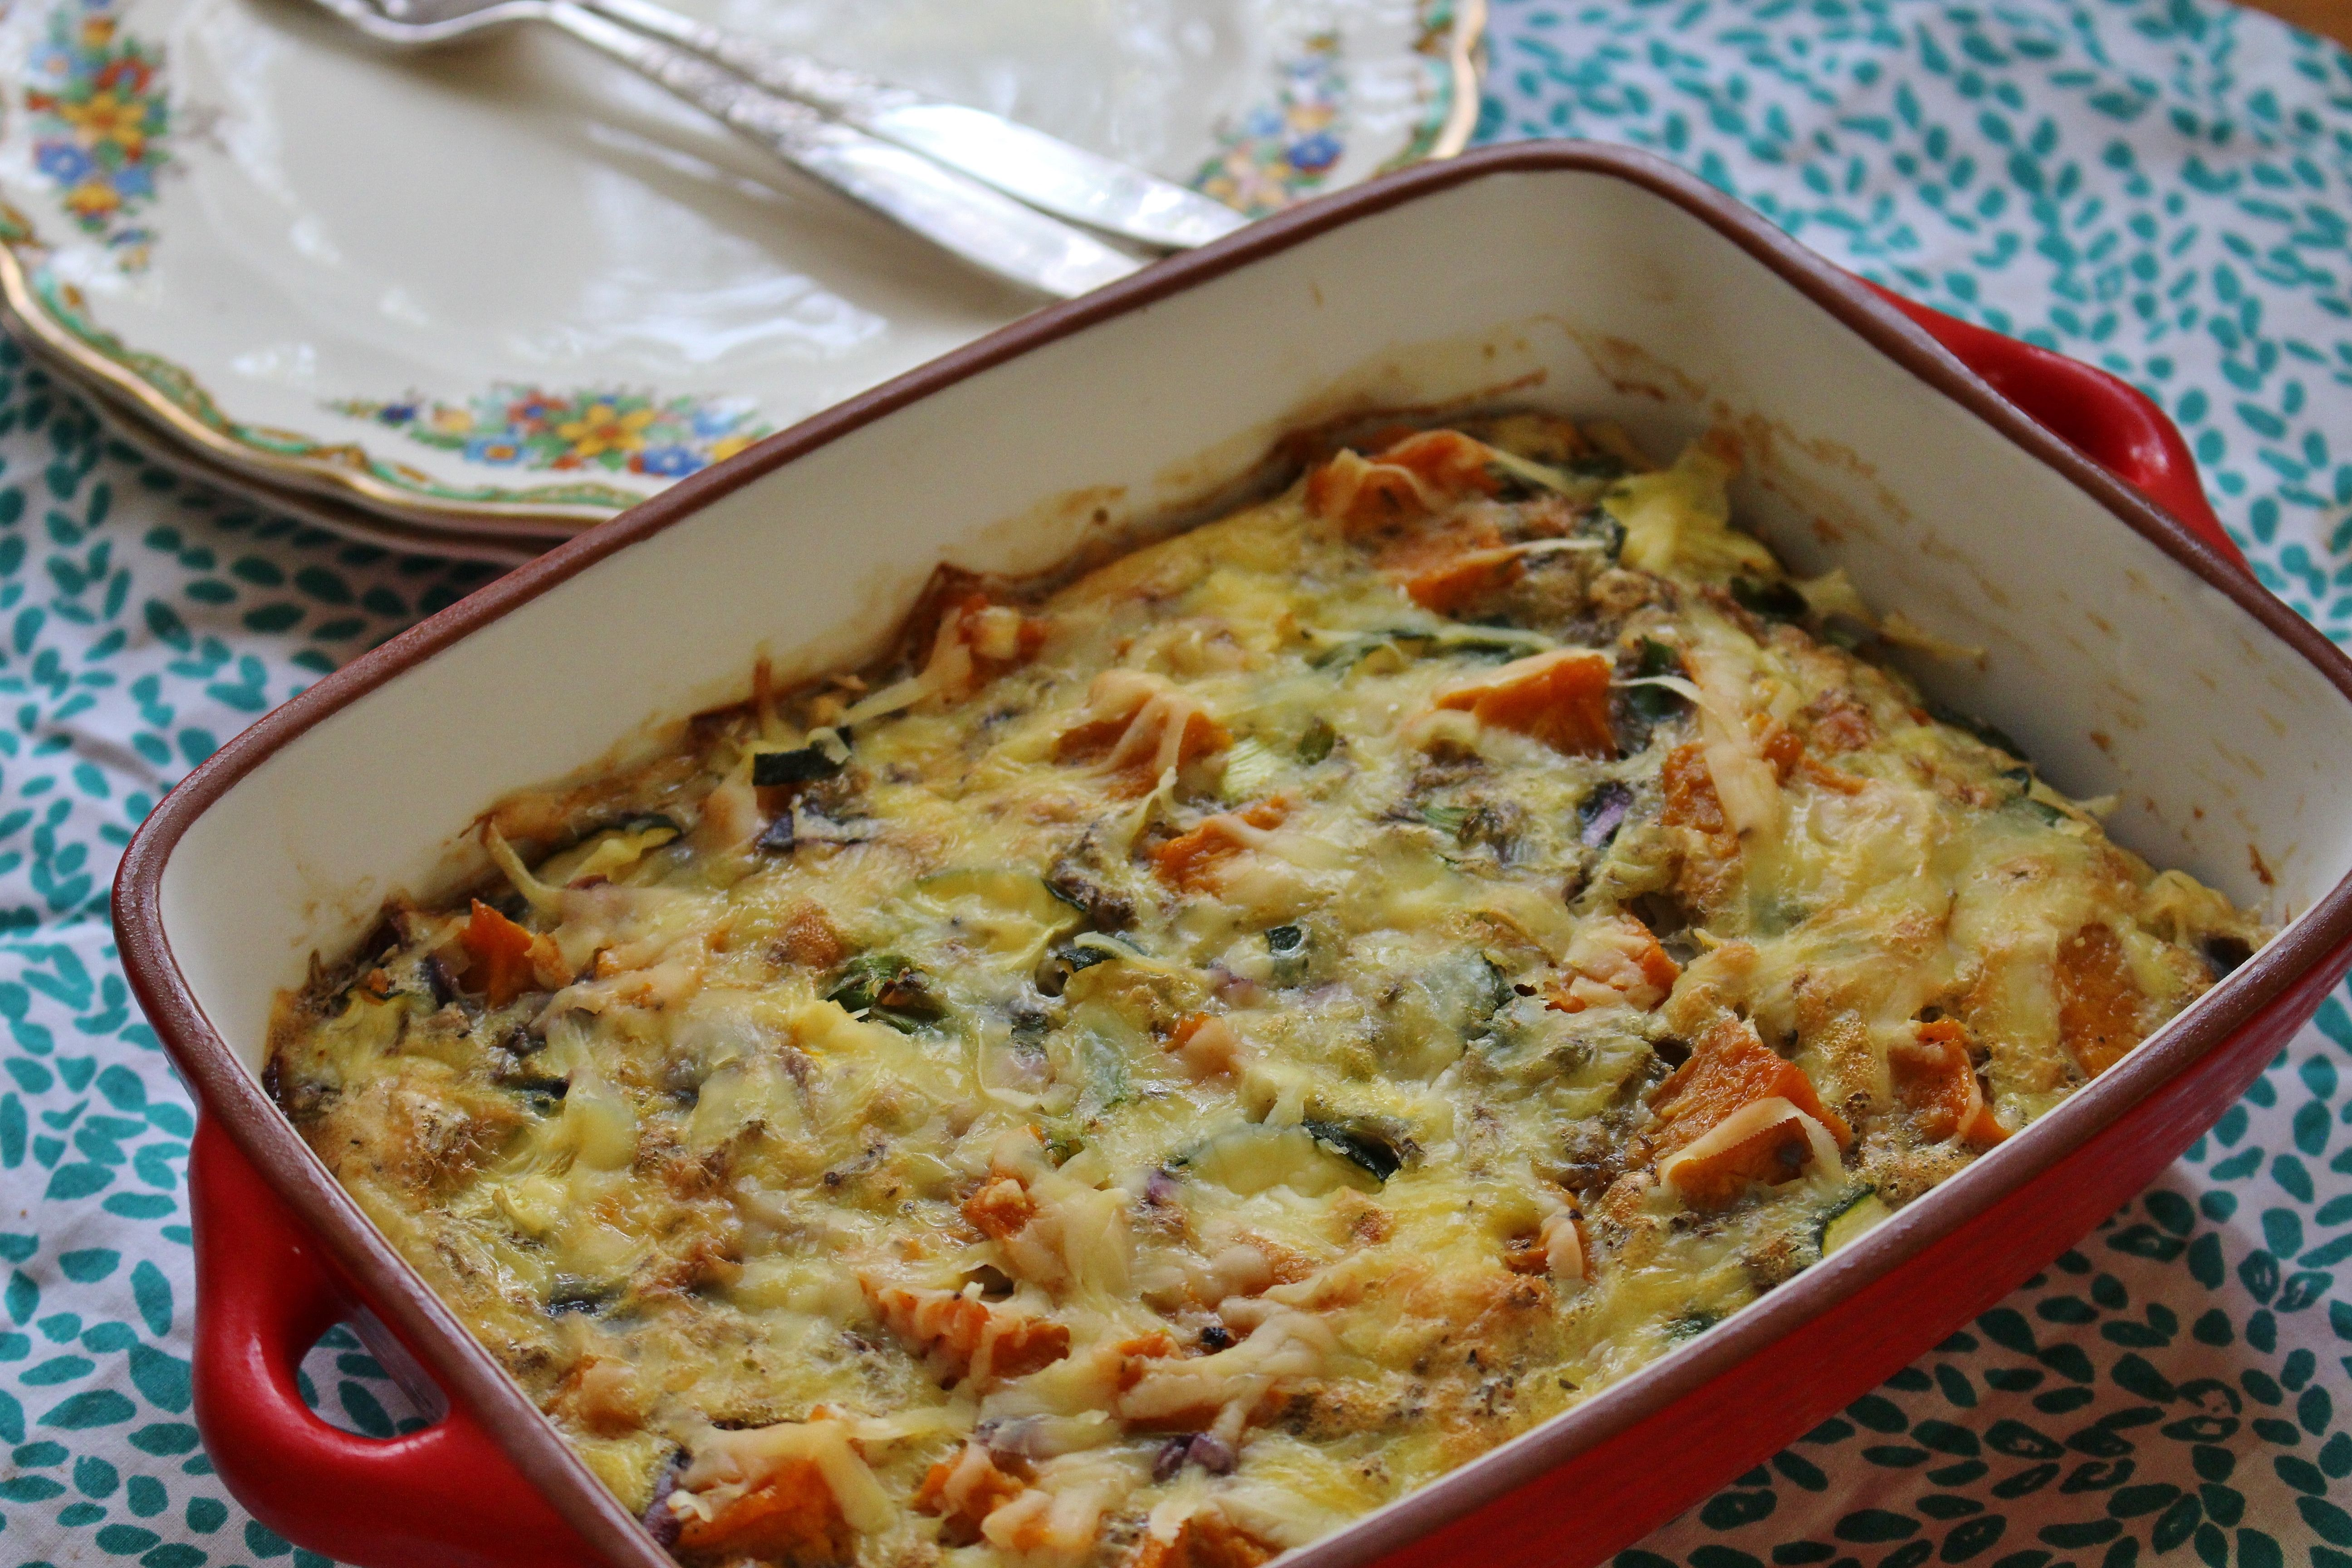 Sweet roasted butternut squash and fresh zucchini are baked ineggs mixed with herbs and garlic for a flavoursome, filling, and healthy meal. Try a generous serving of this crustless quiche with a …